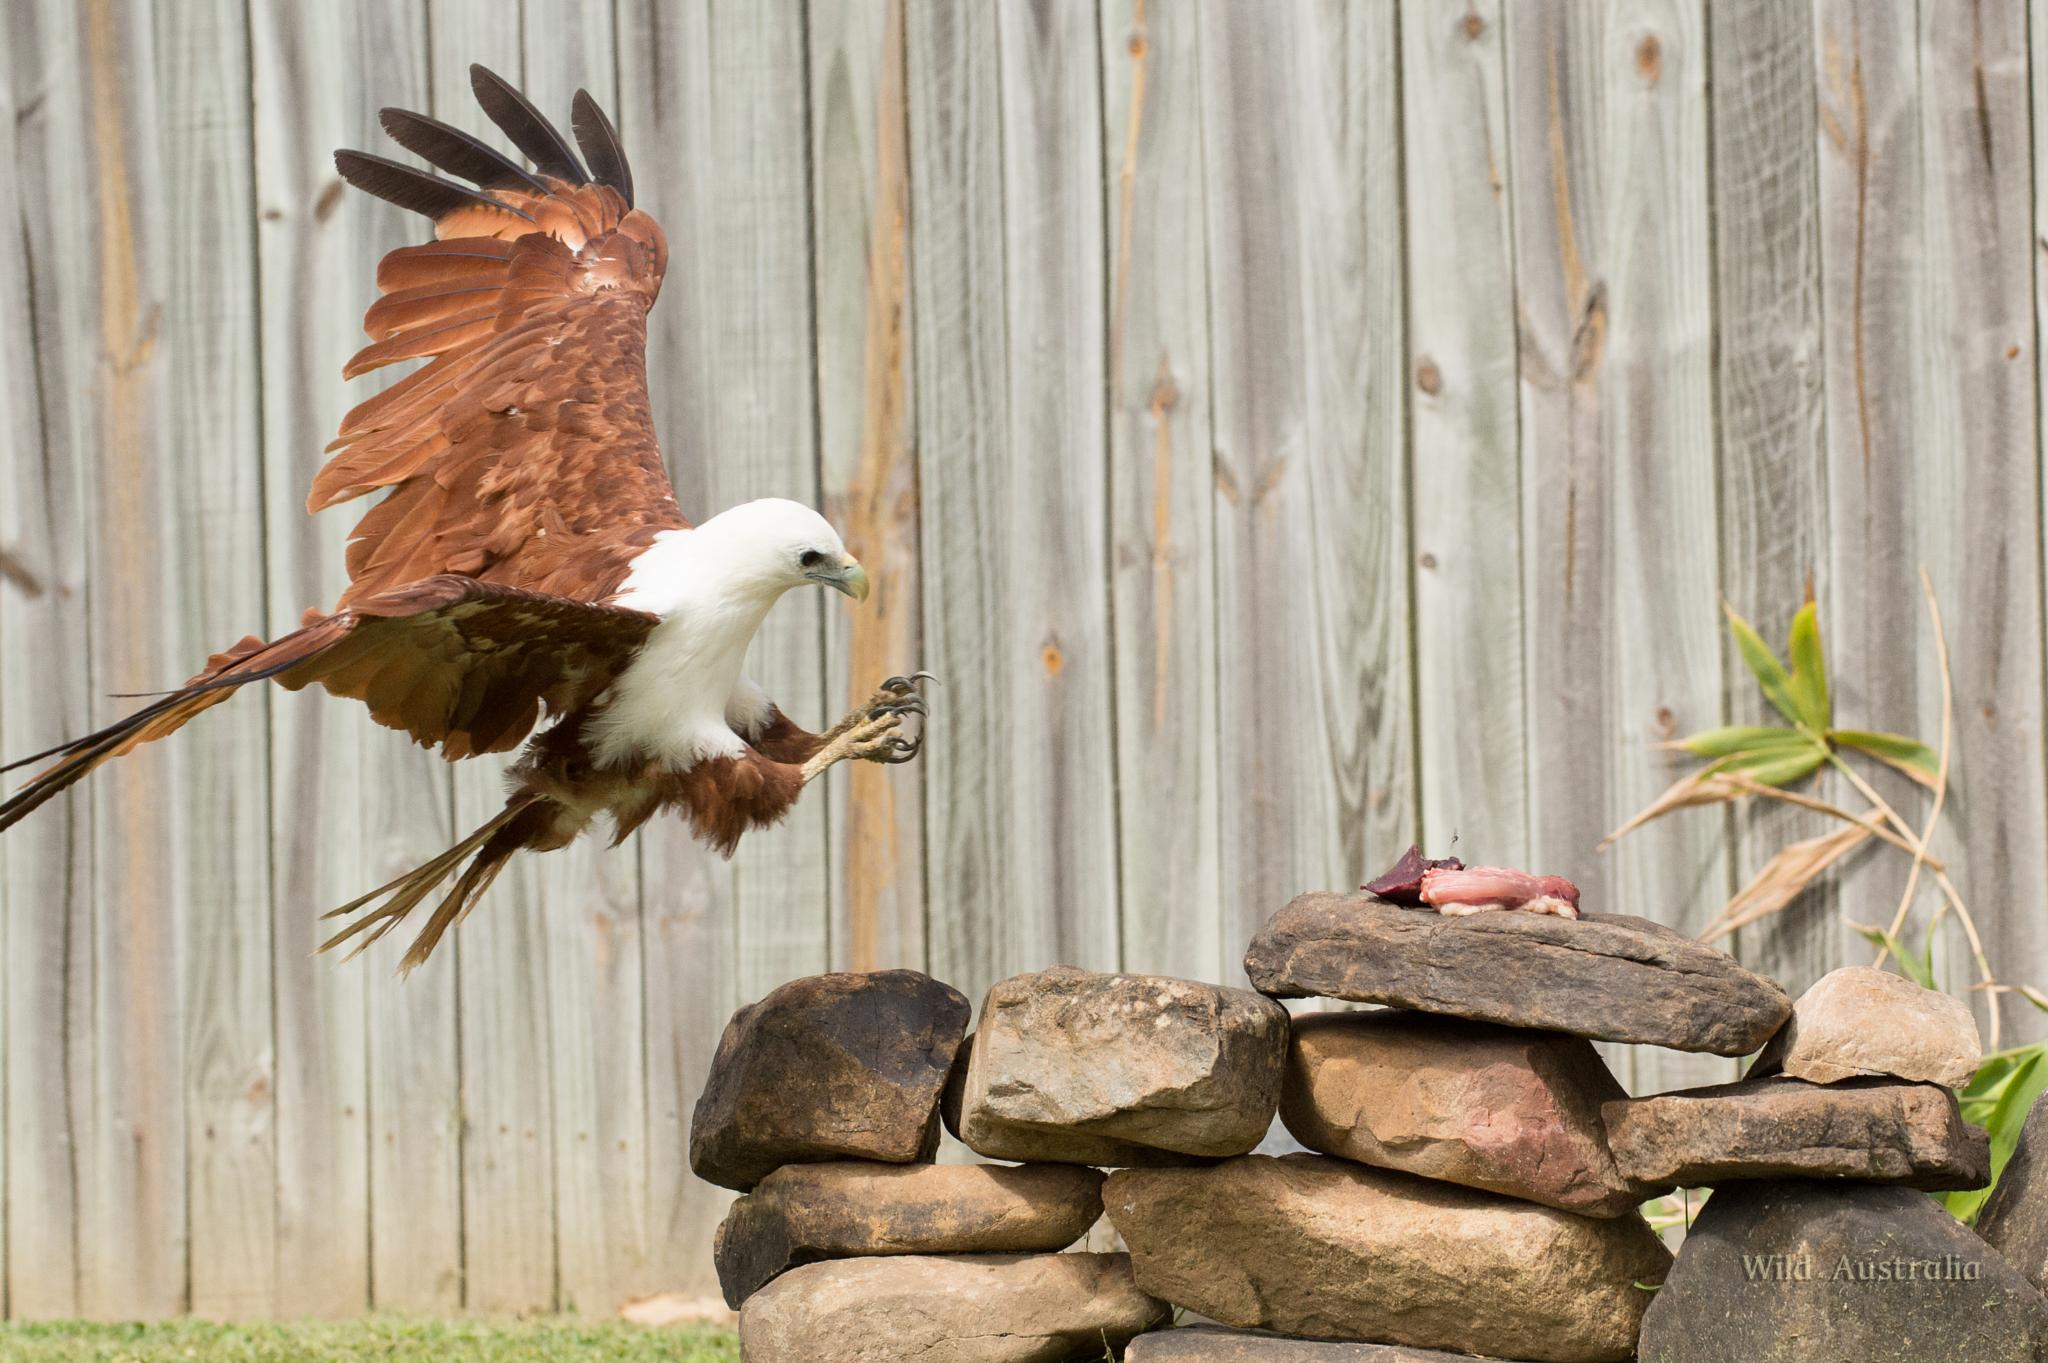 Brahminy Kite takin the magpies lunch. by Terry Dell